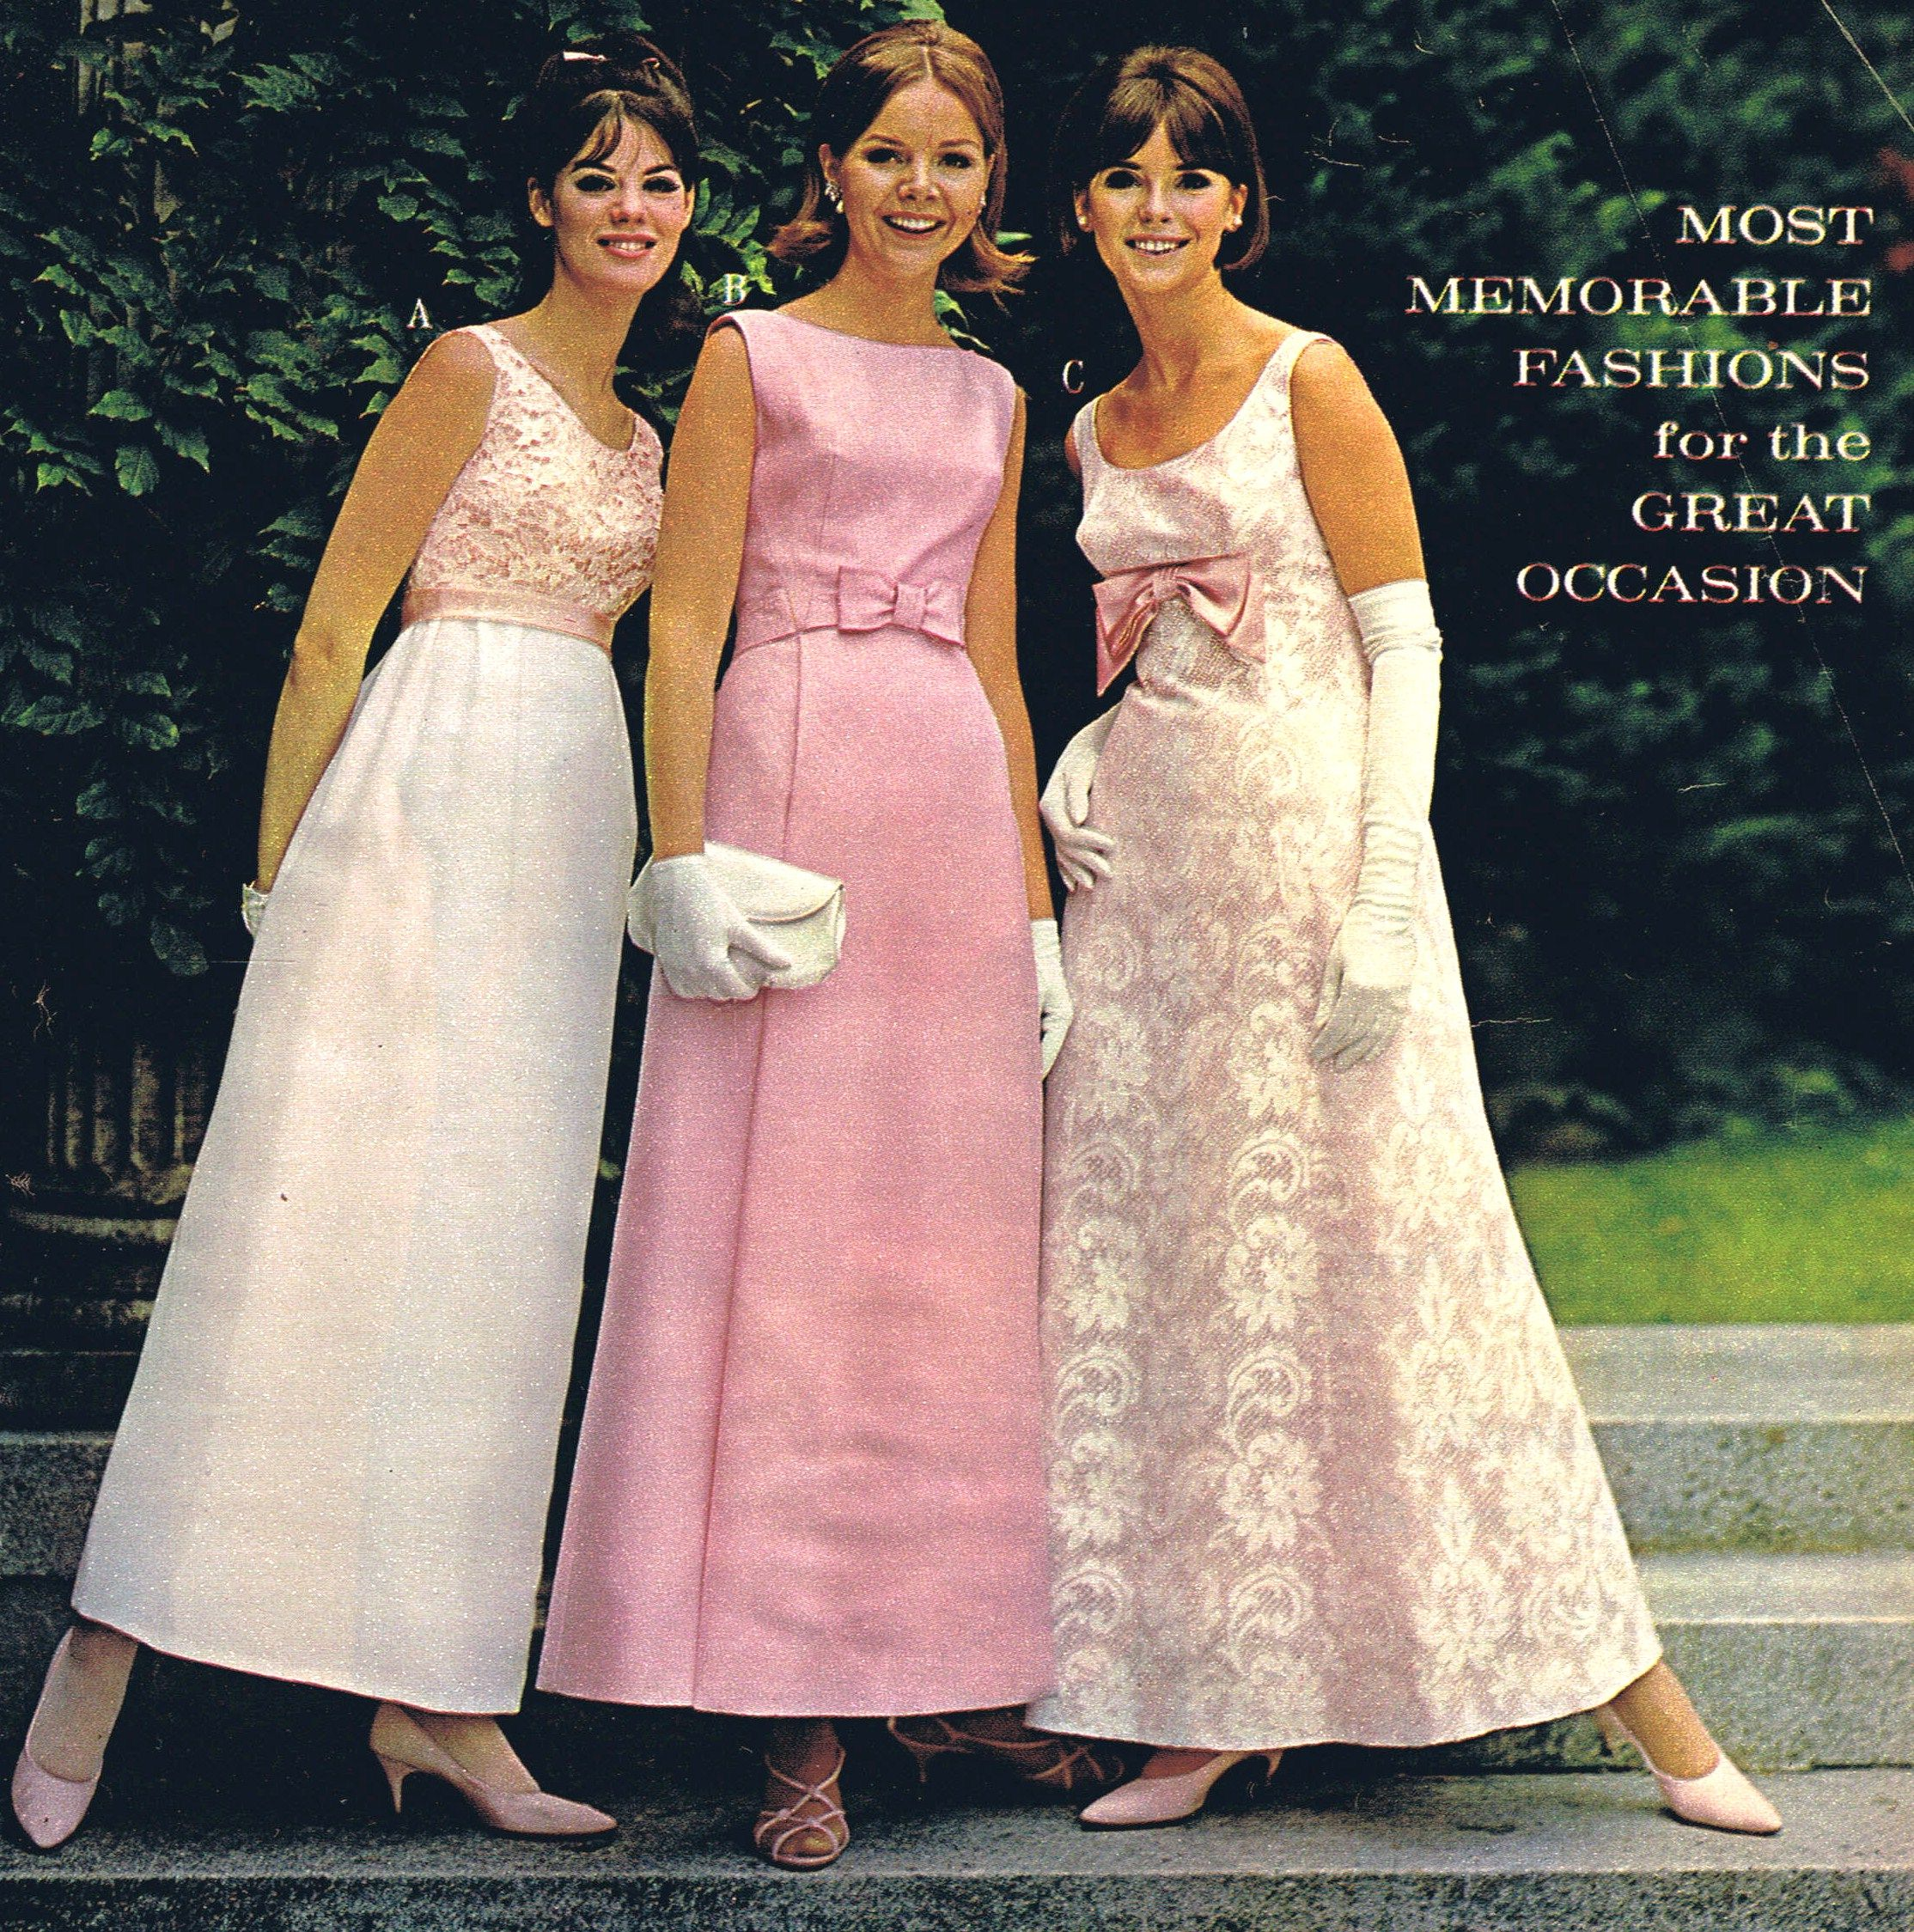 Prom dresses us style I wore a white one wpink roses green